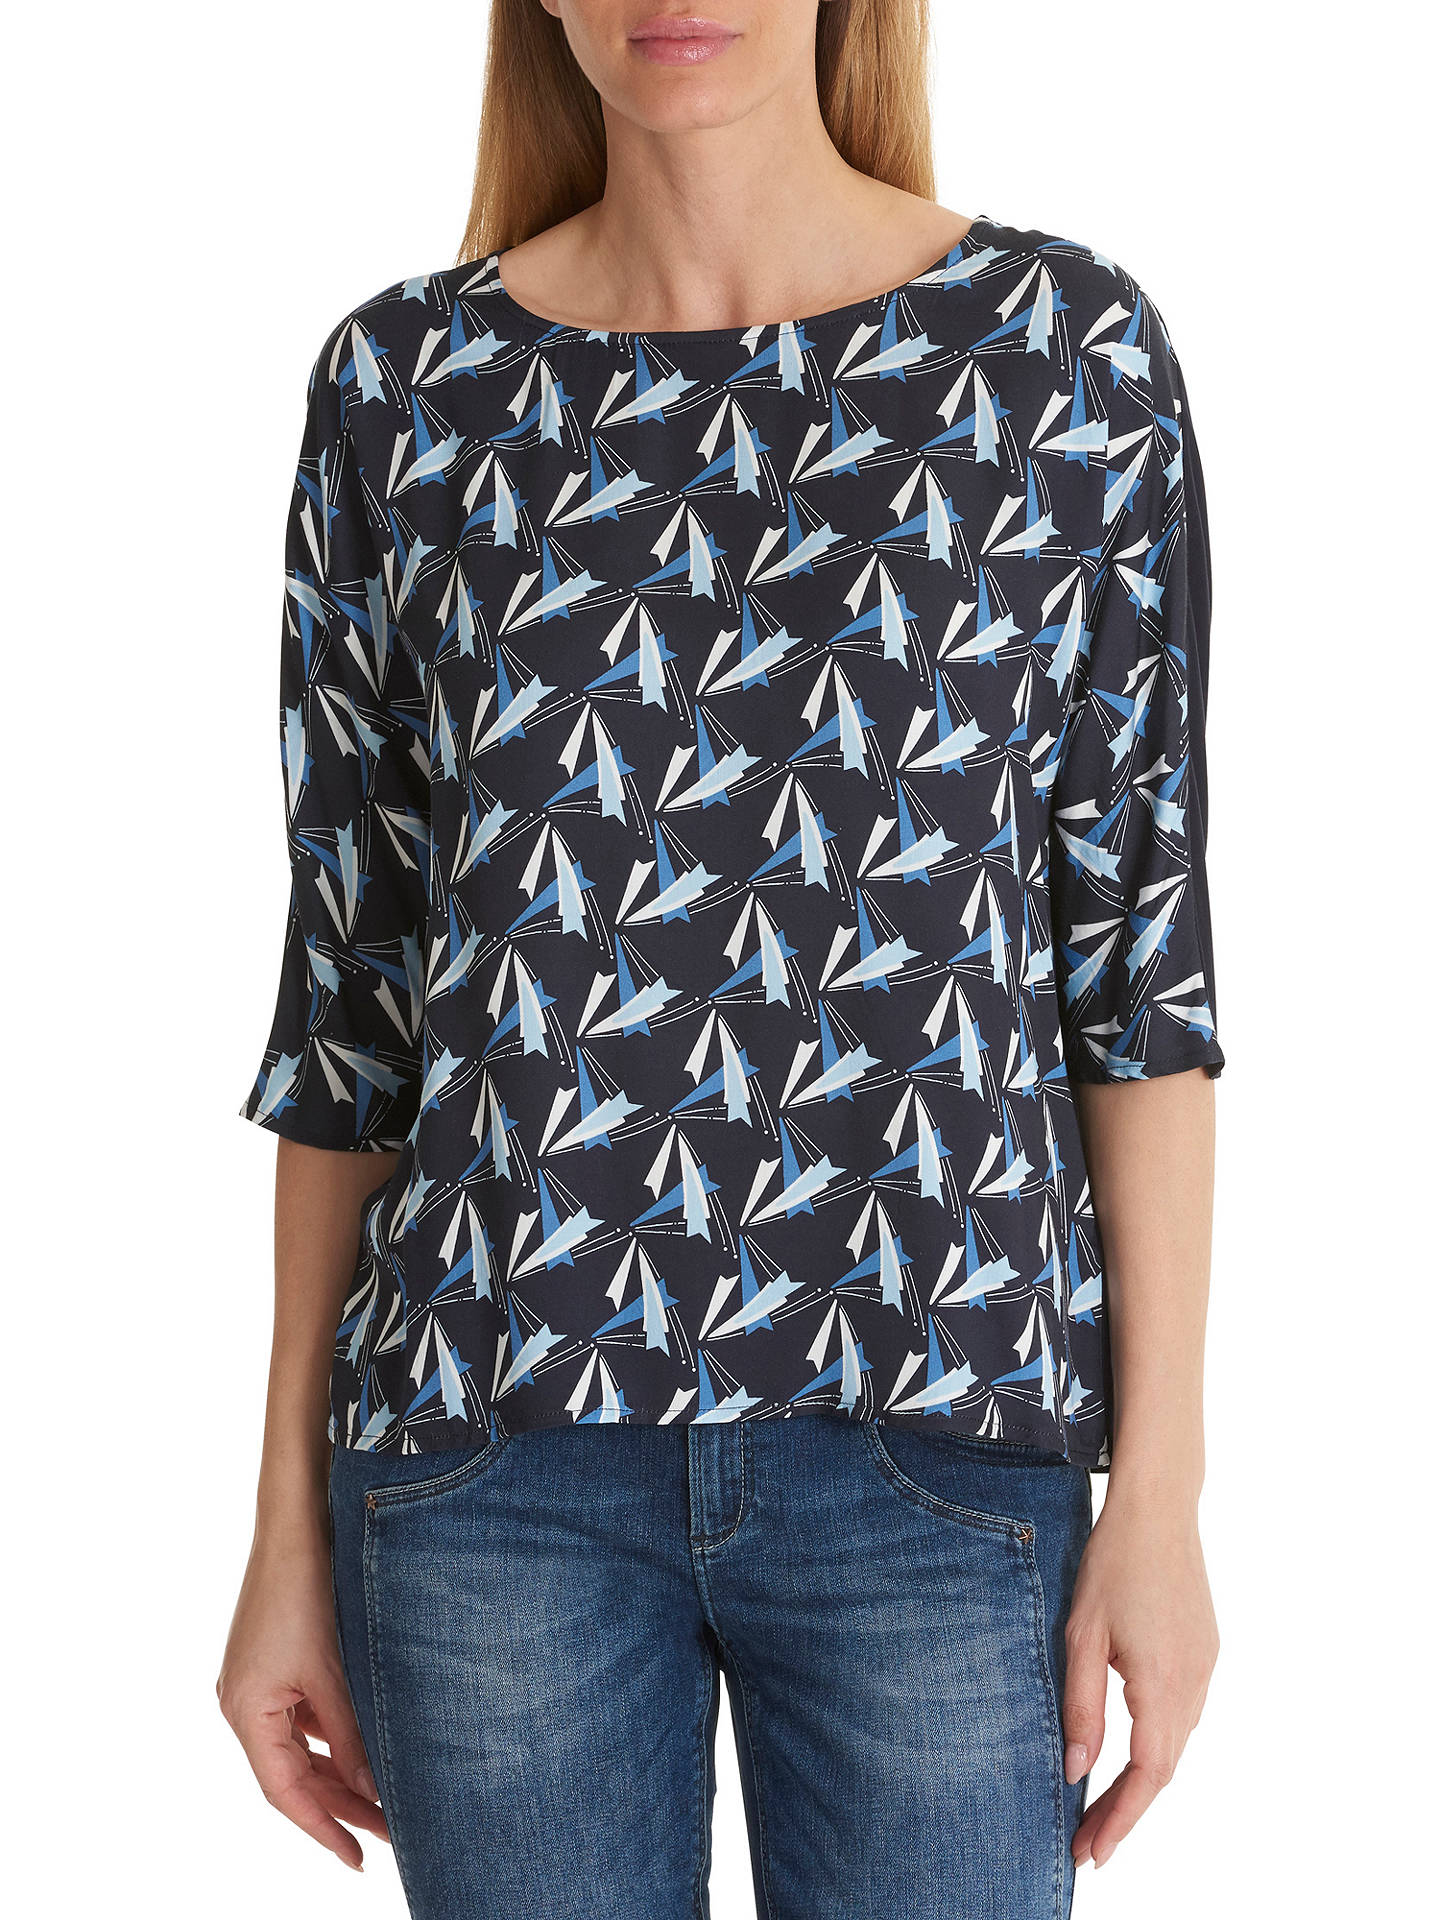 BuyBetty Barclay Dart Print Top, Blue/Blue, 10 Online at johnlewis.com